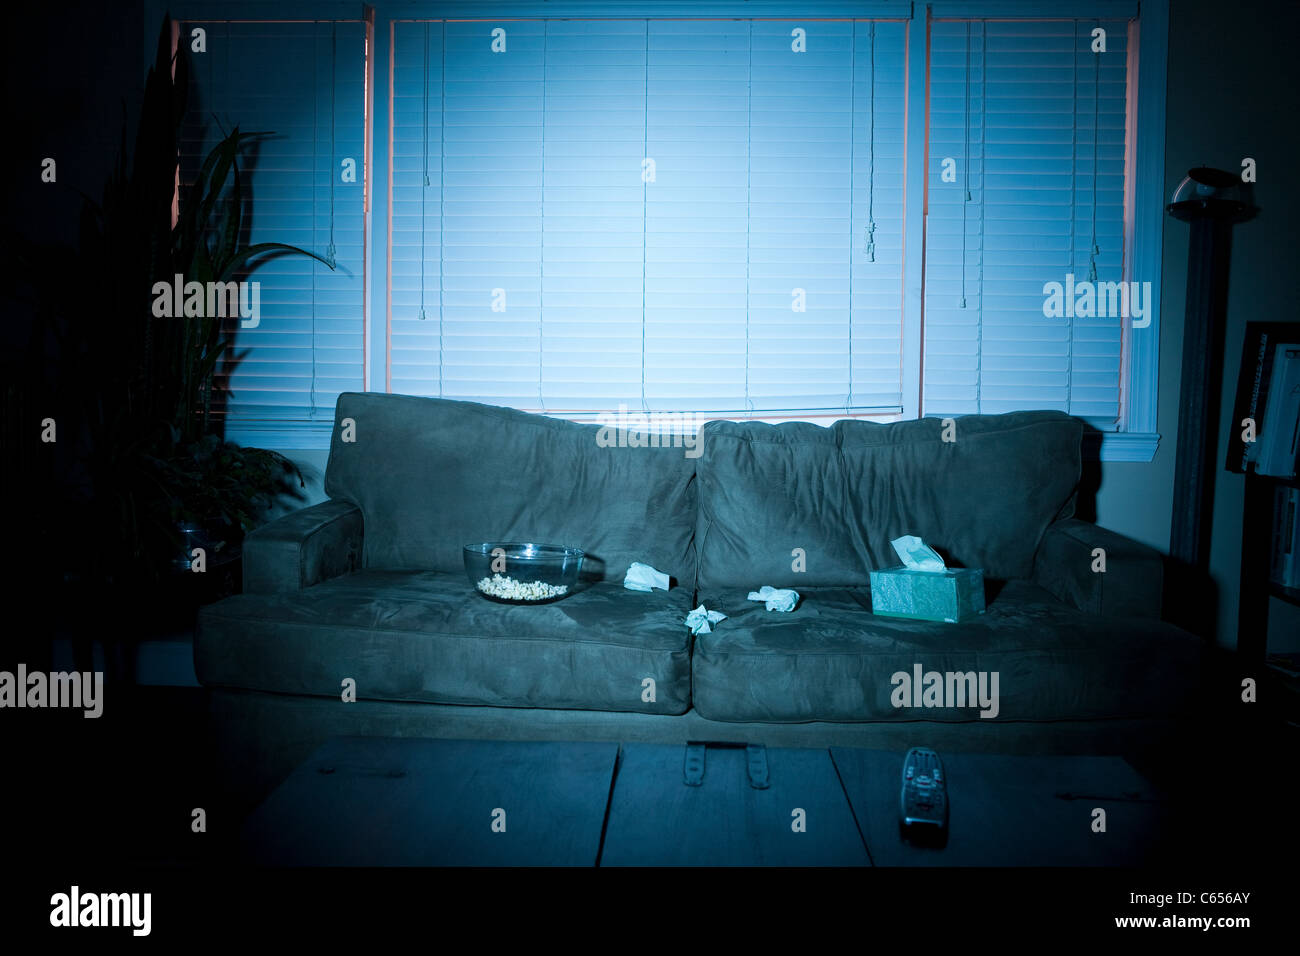 Empty sofa with box of tissues and popcorn - Stock Image